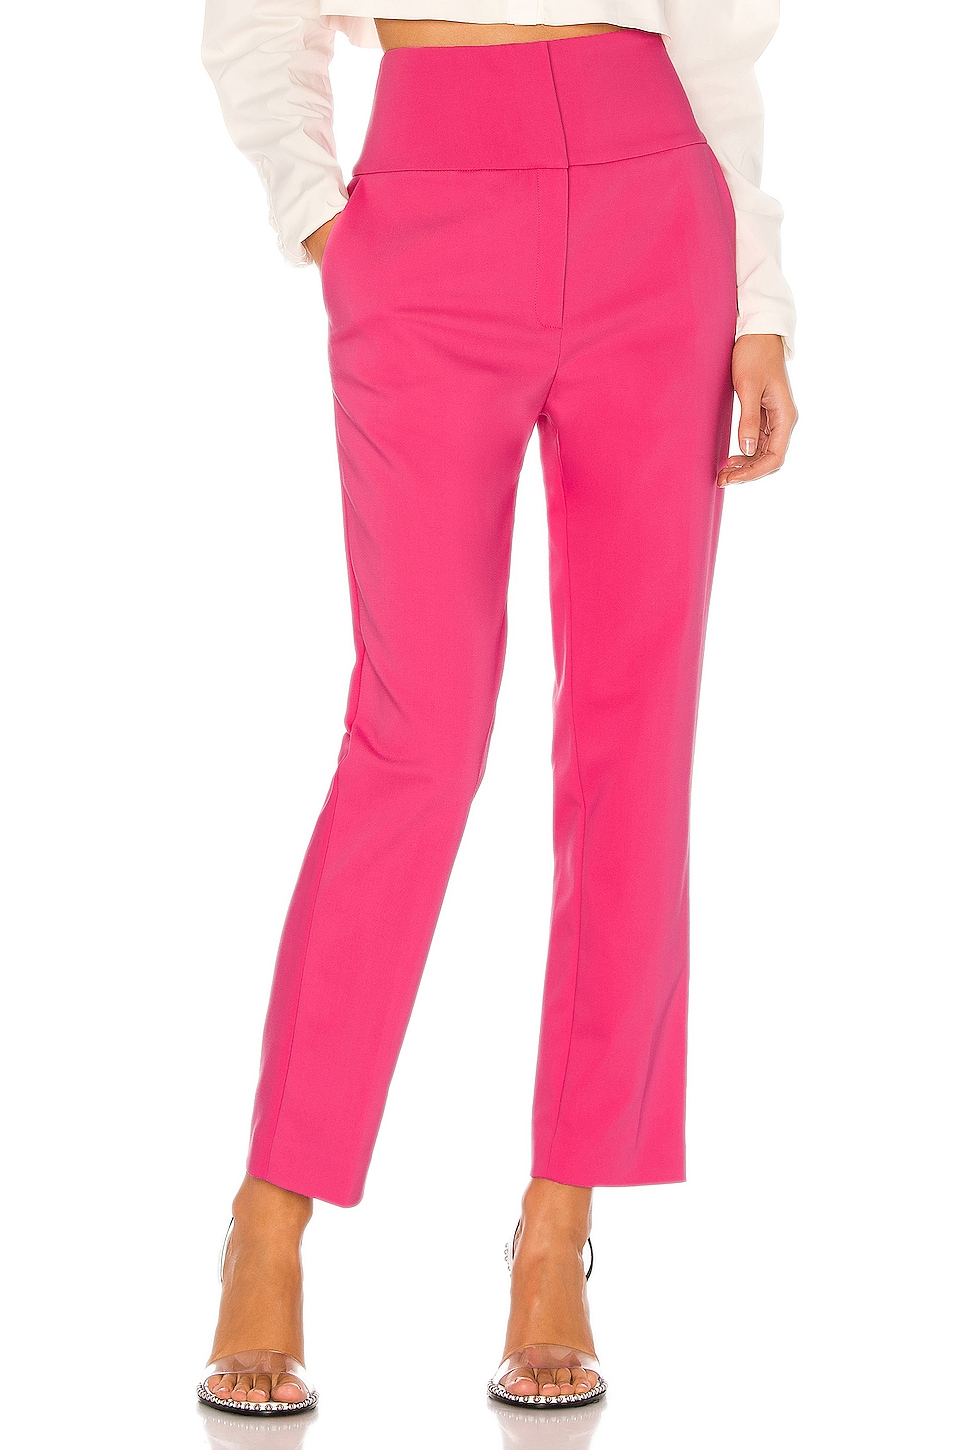 GRLFRND Cameron Trousers in Bright Pink